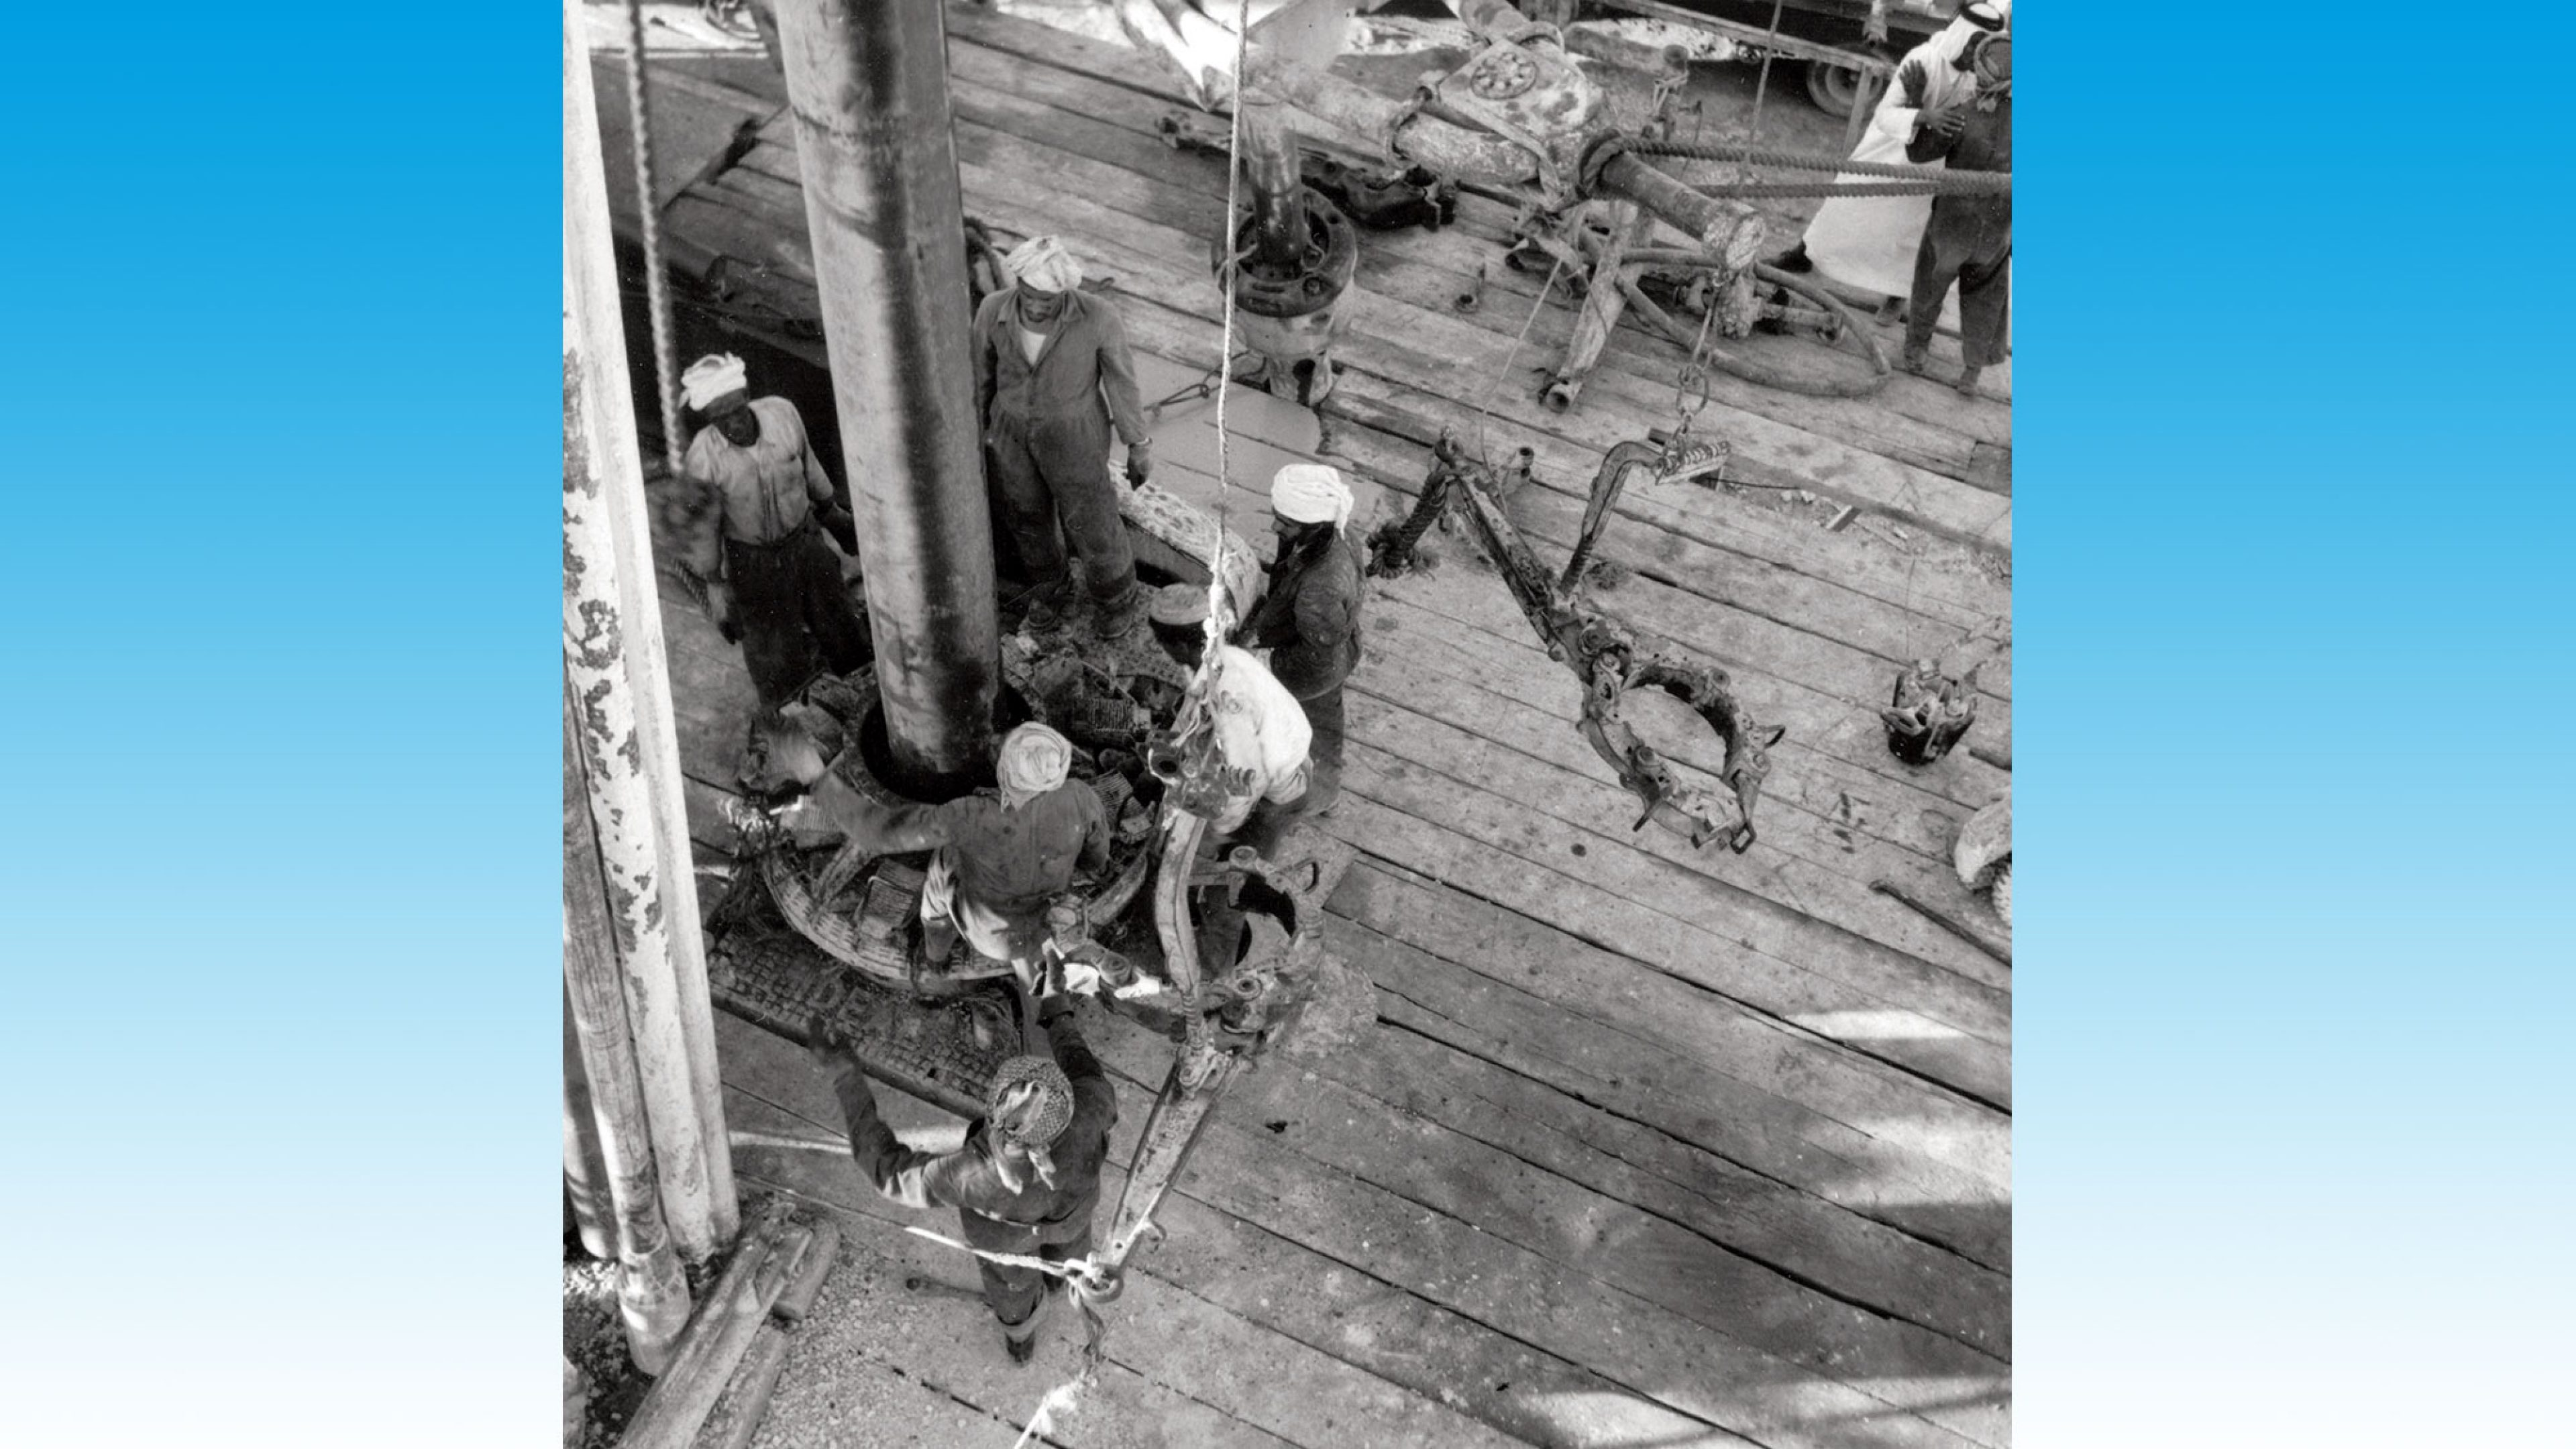 Arab drill operatives working on rig 53 in the Dukhan oil field in Qatar during the early 1950s